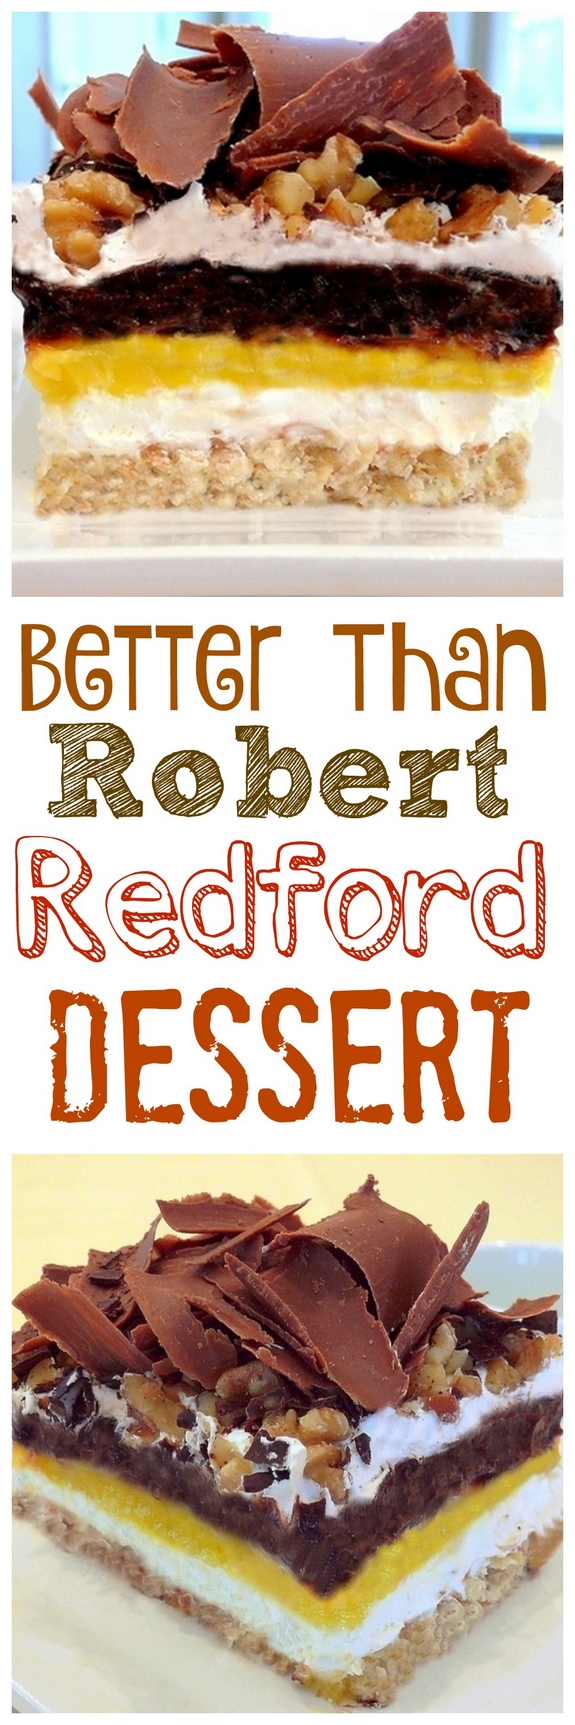 Better than Robert Redford Dessert